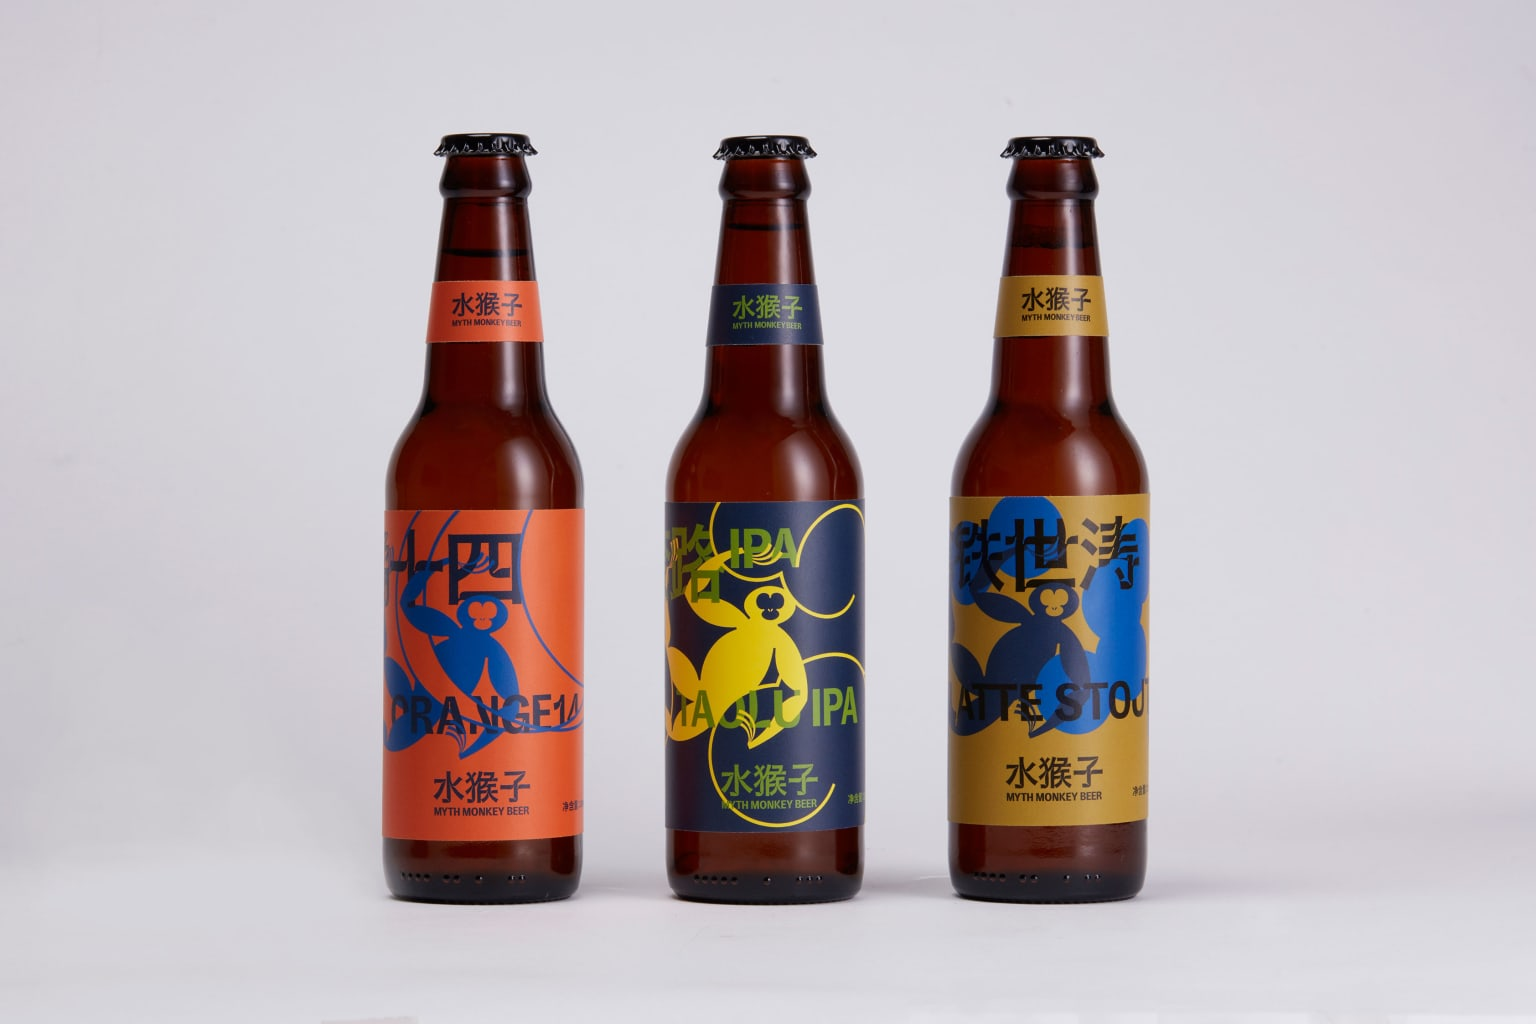 Rebranding a local Chinese beer brand